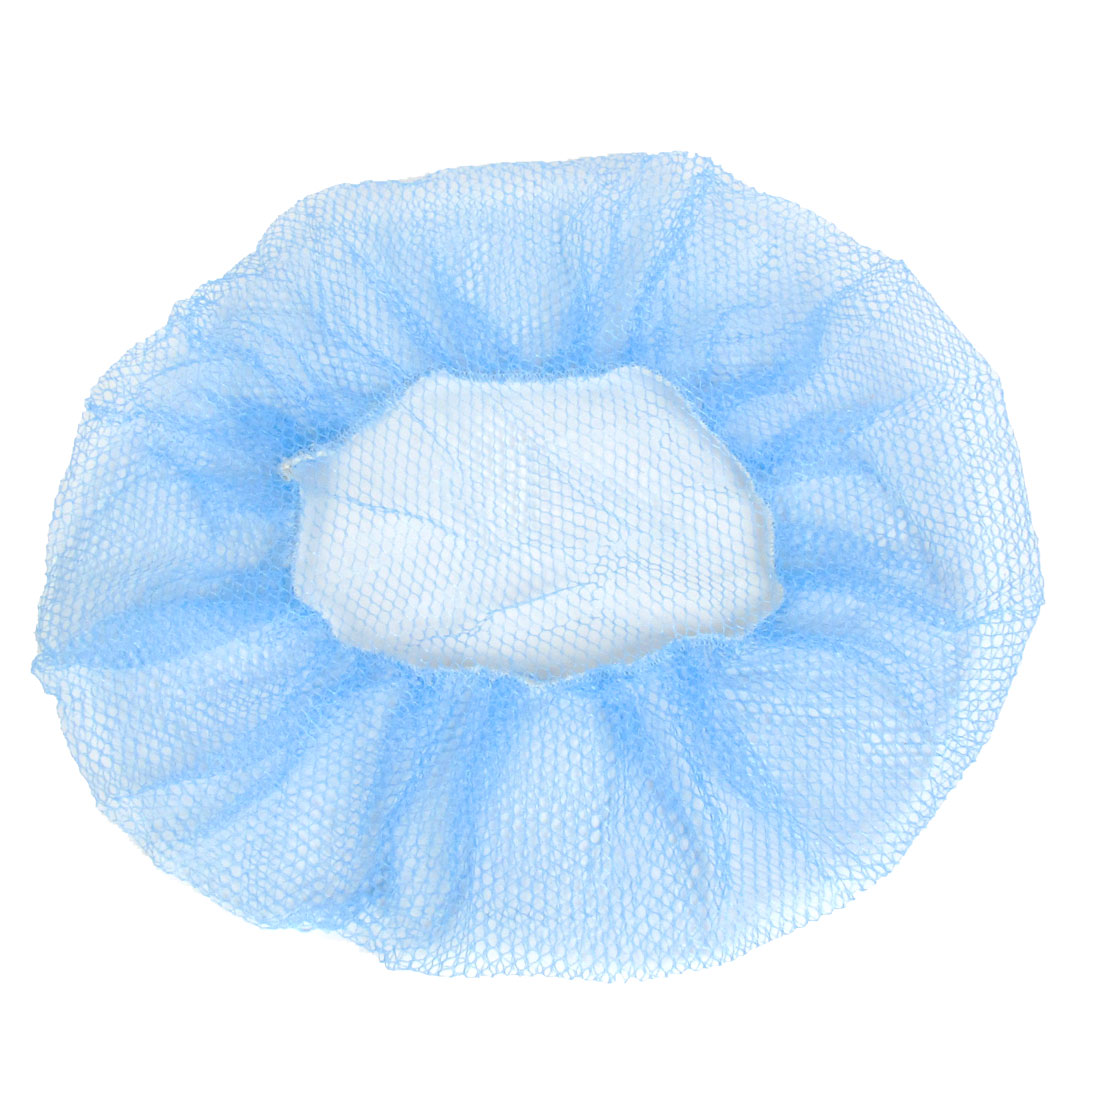 Nylon Mesh Safety Security Stretchy Electric Fan Protection Cover Blue